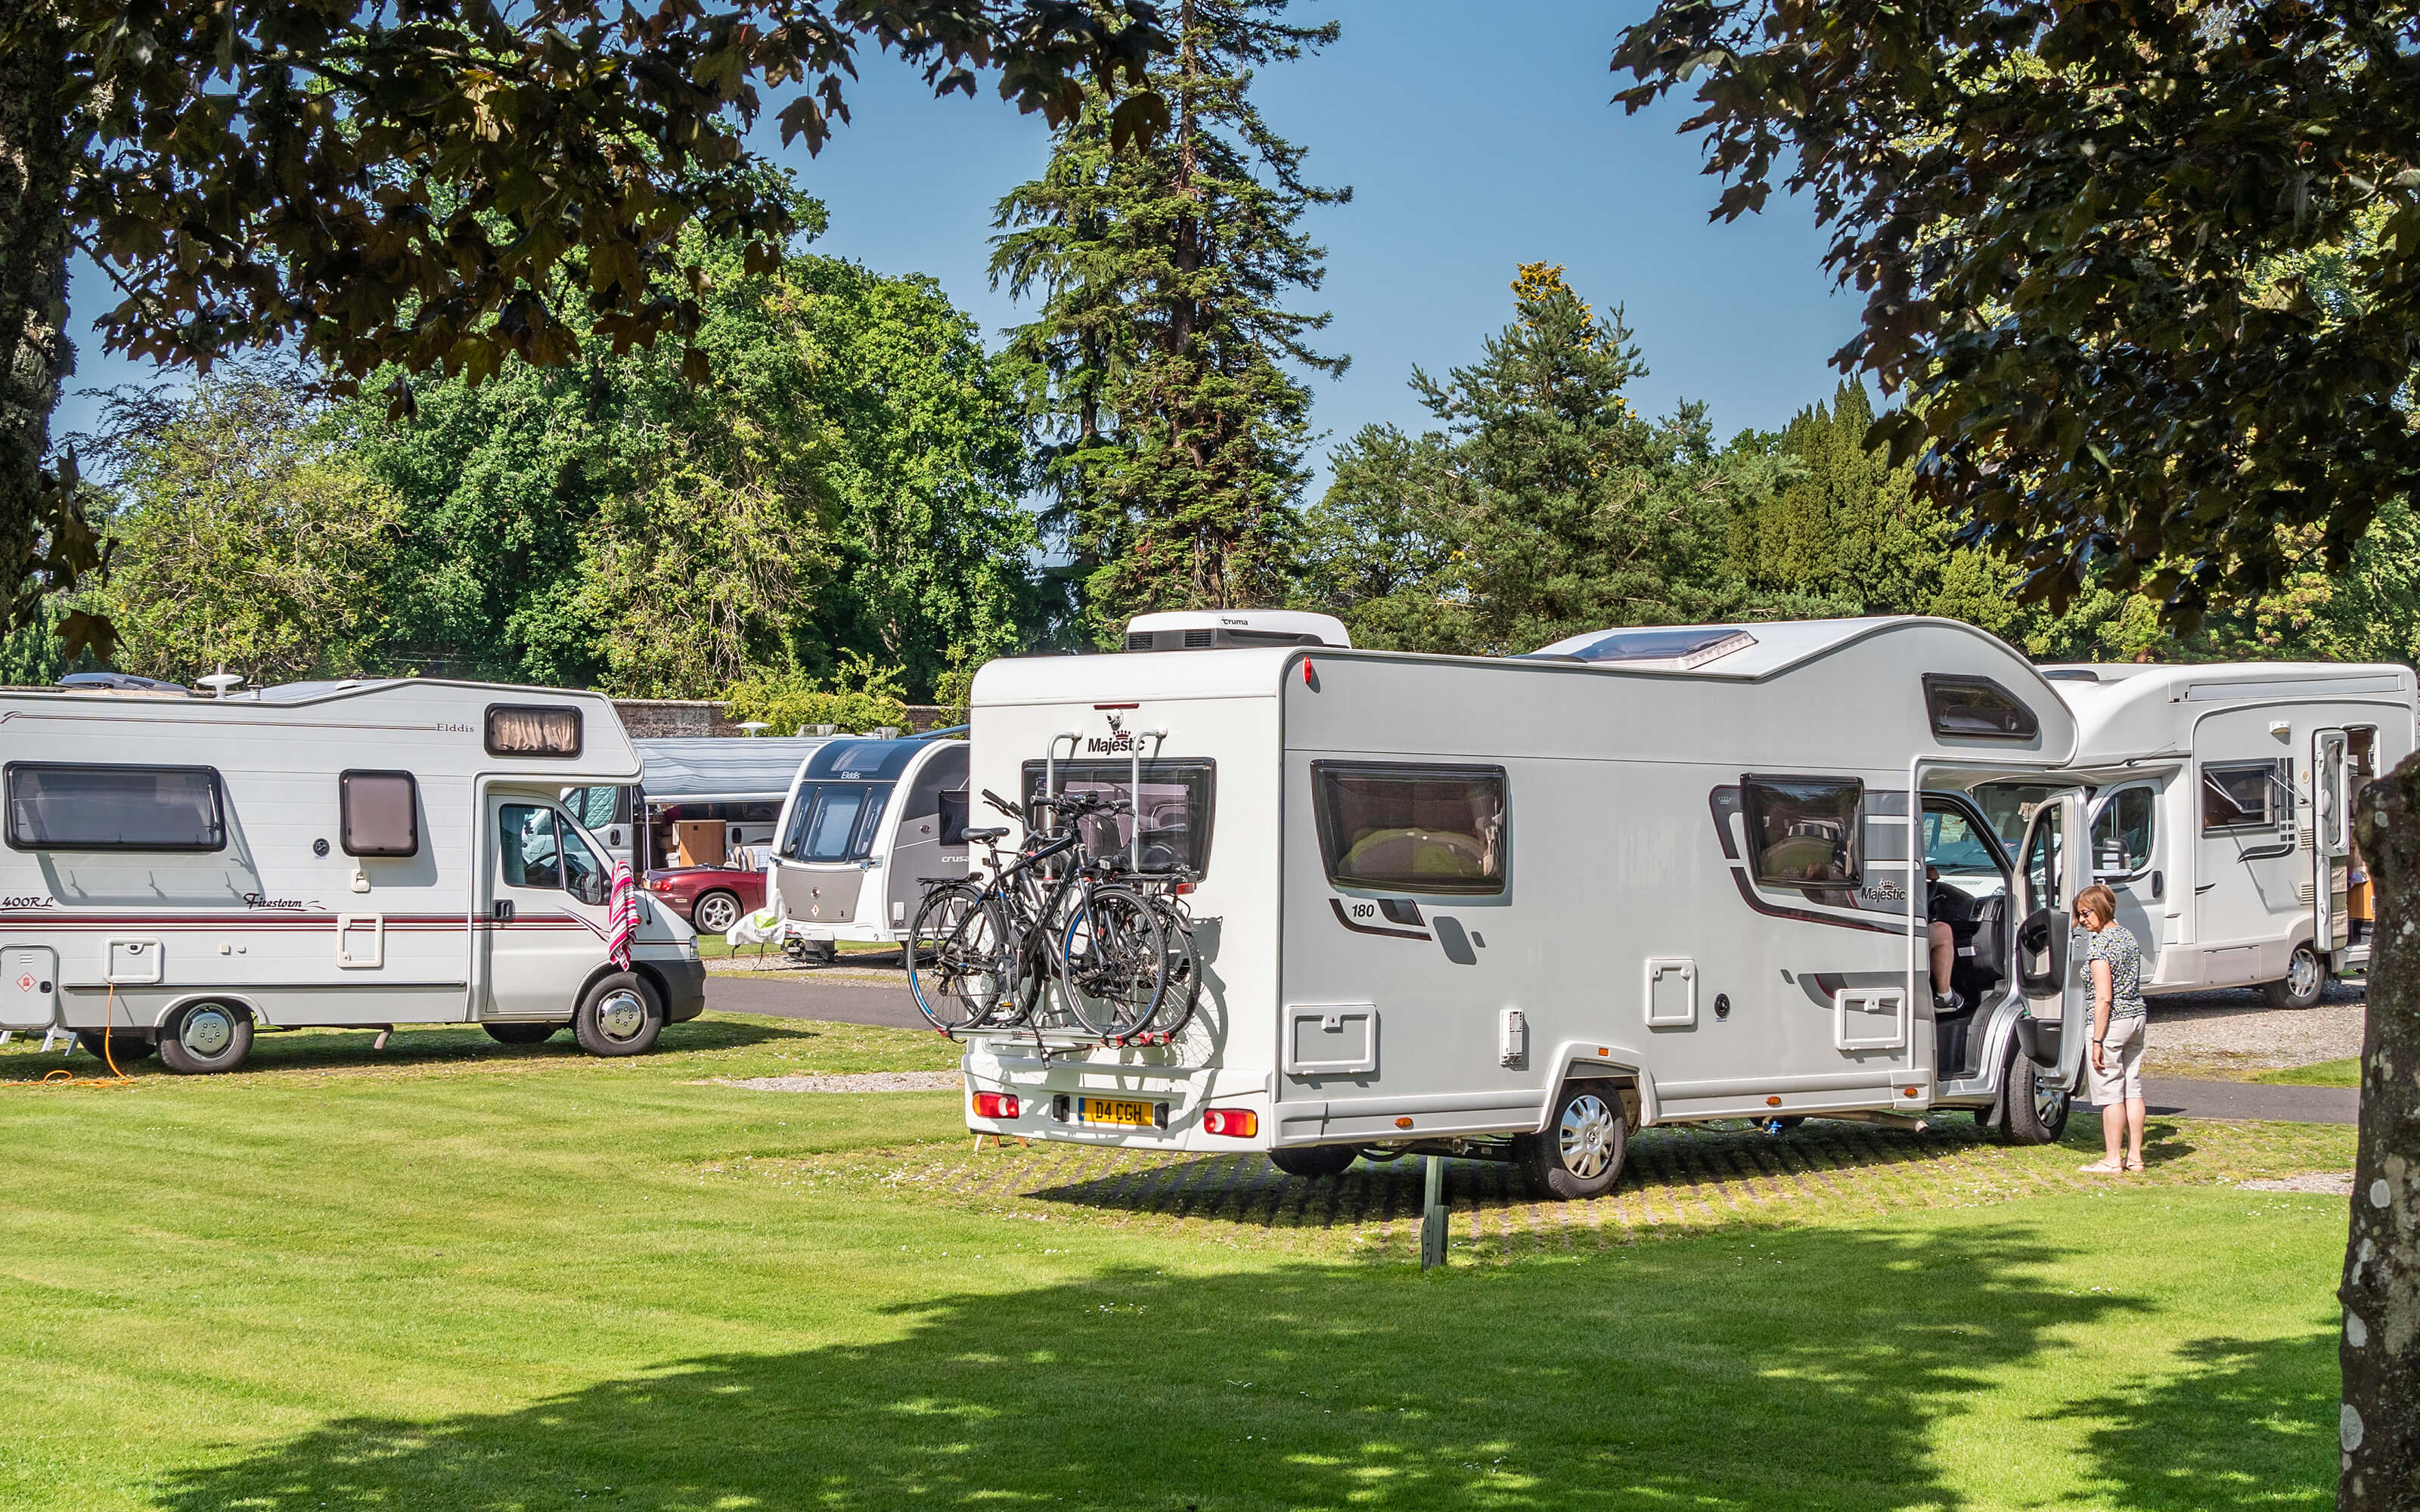 A group of motorhomes parked in the middle of the walled garden.